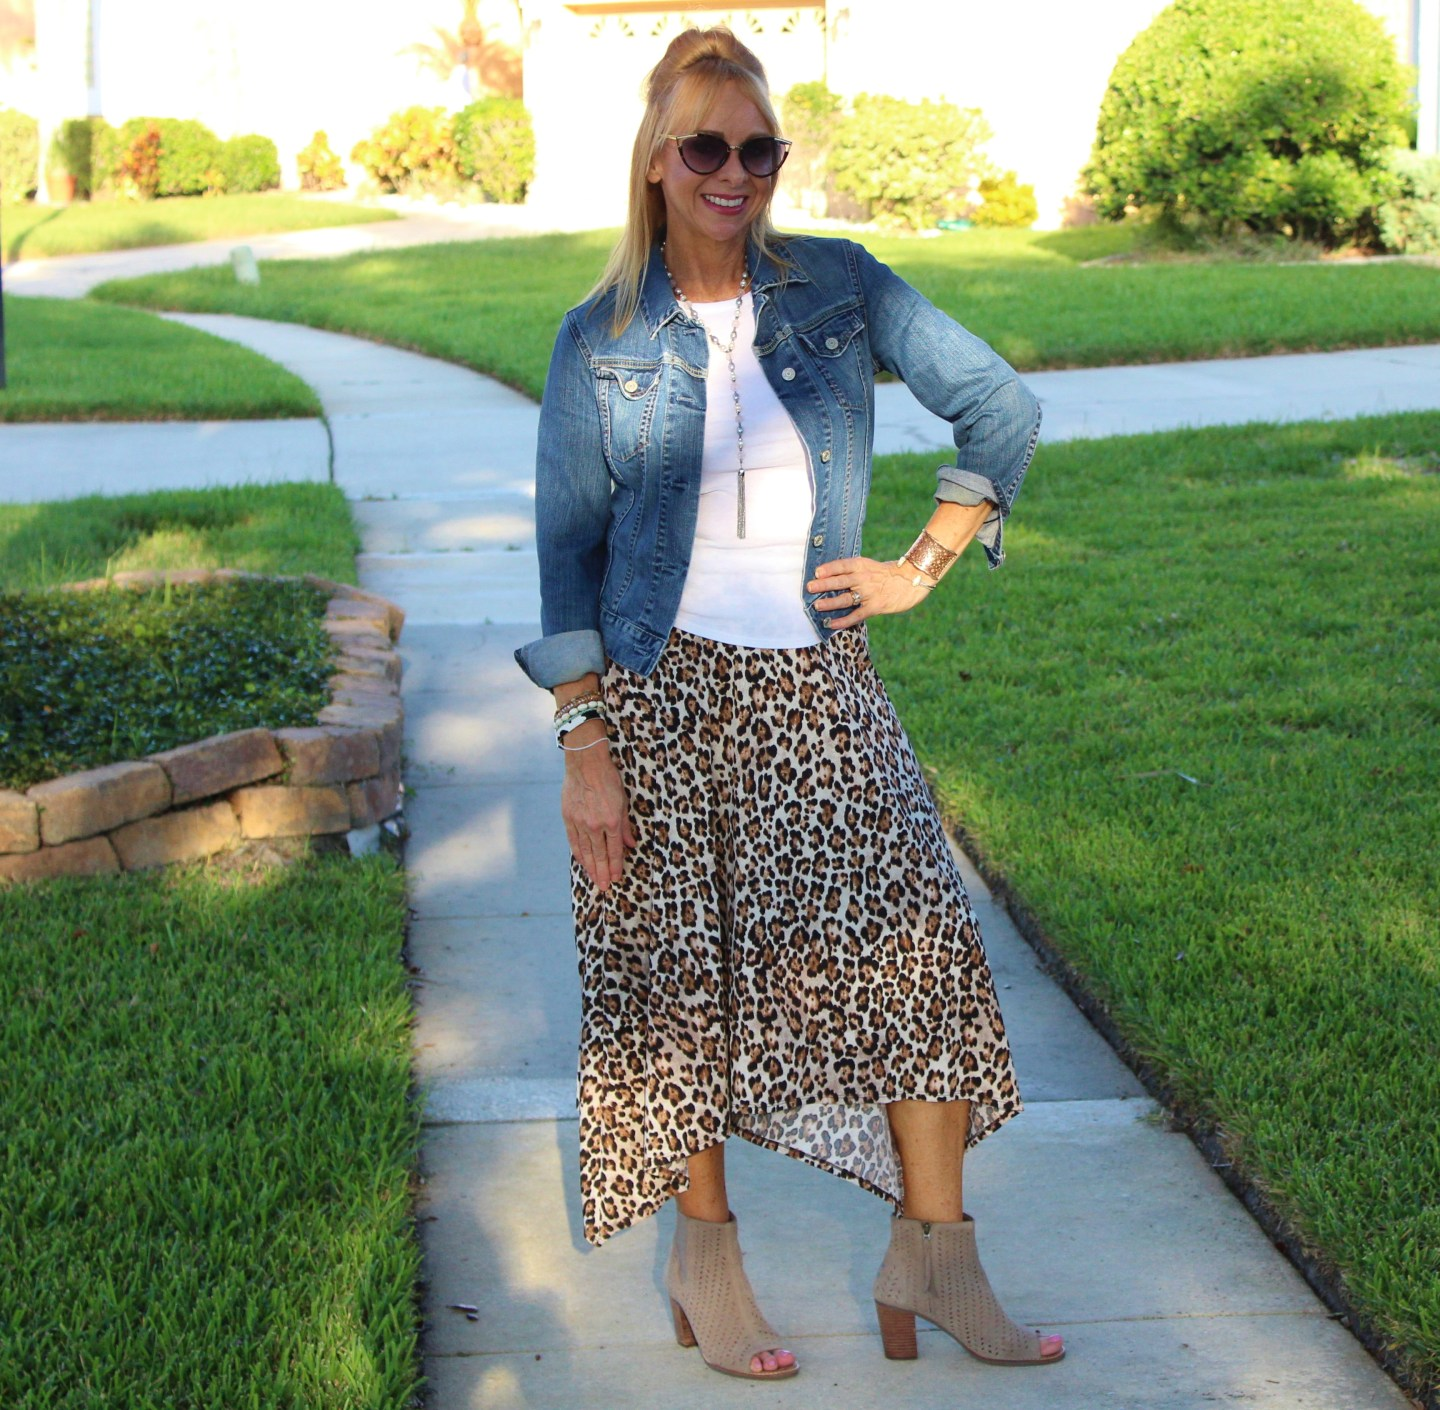 Leopard skirt + Denim Jacket